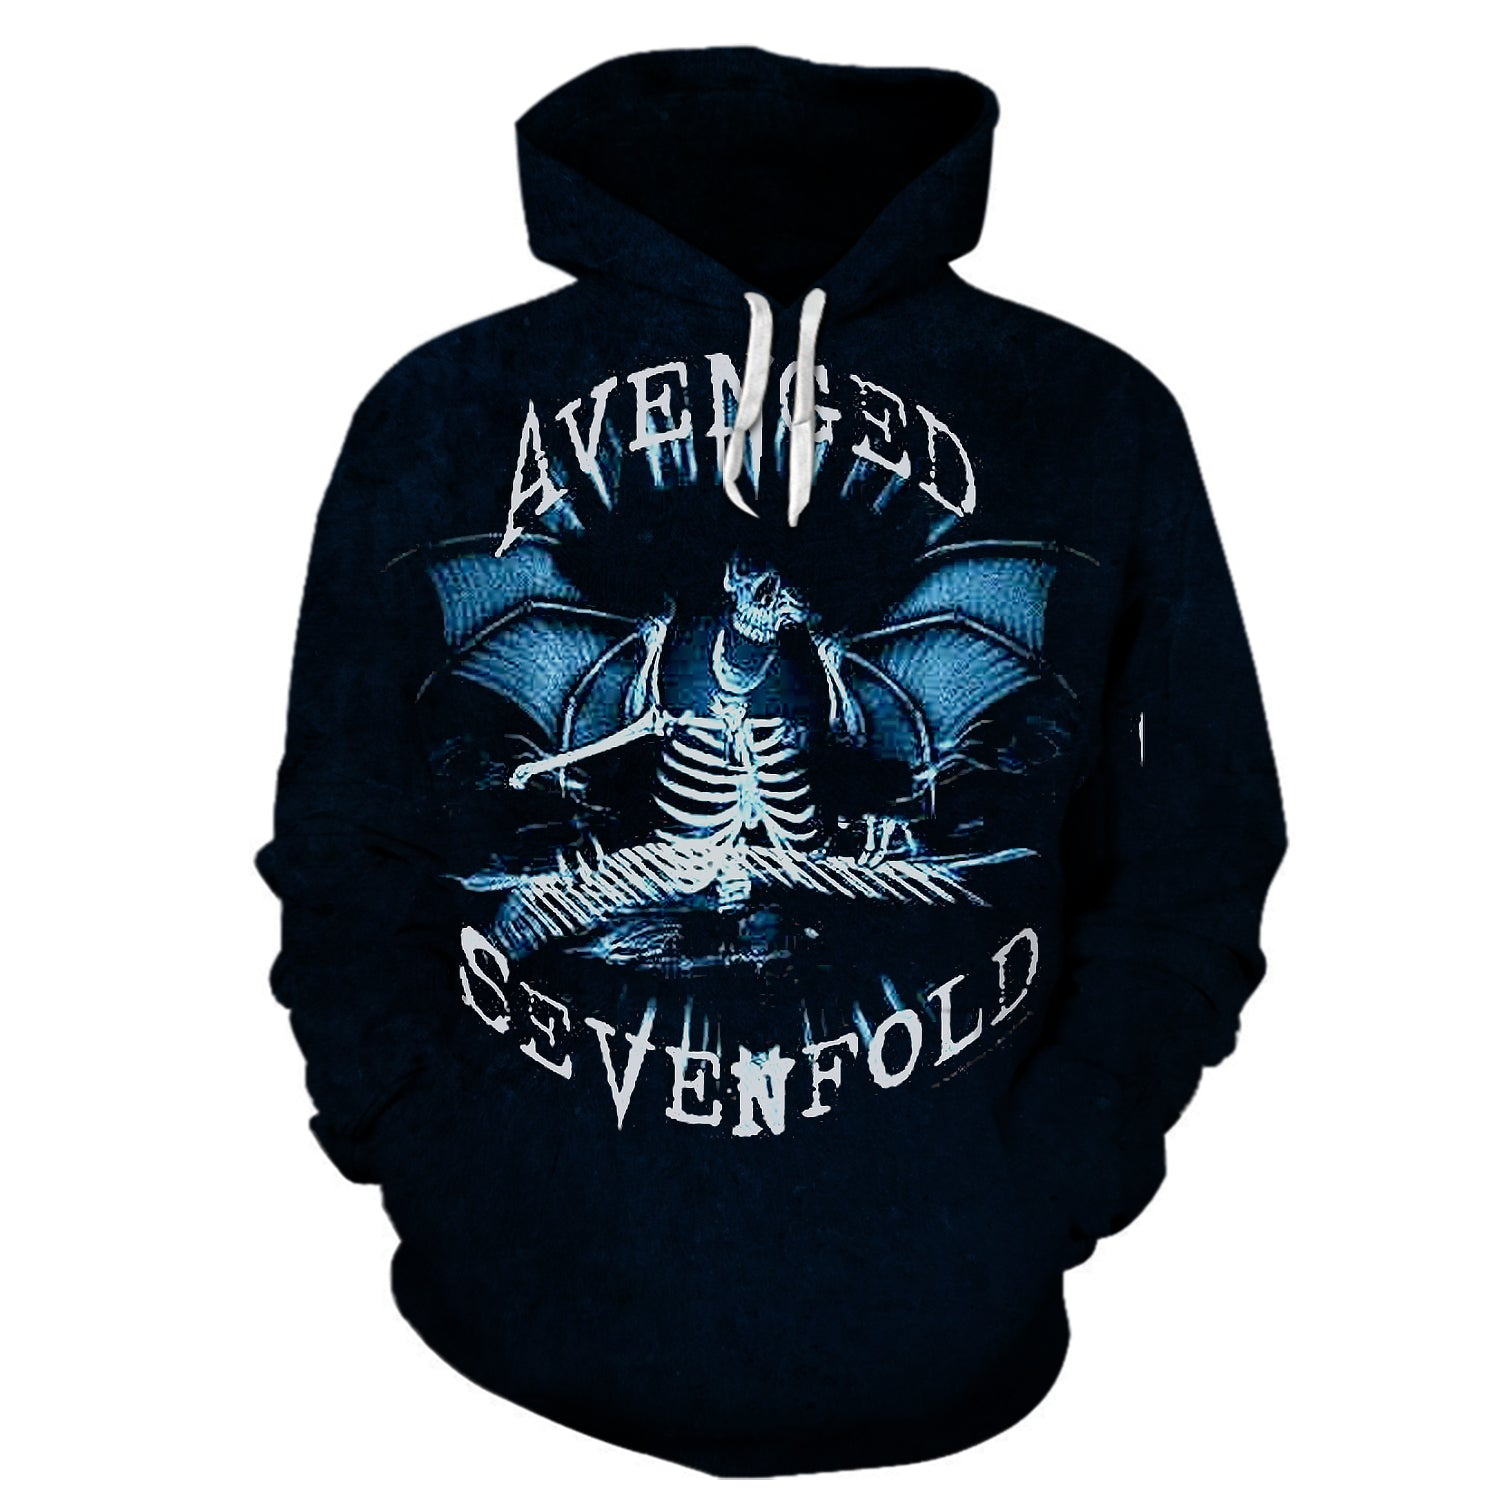 Avenged Sevenfold Organ Donor 3D Full Printing